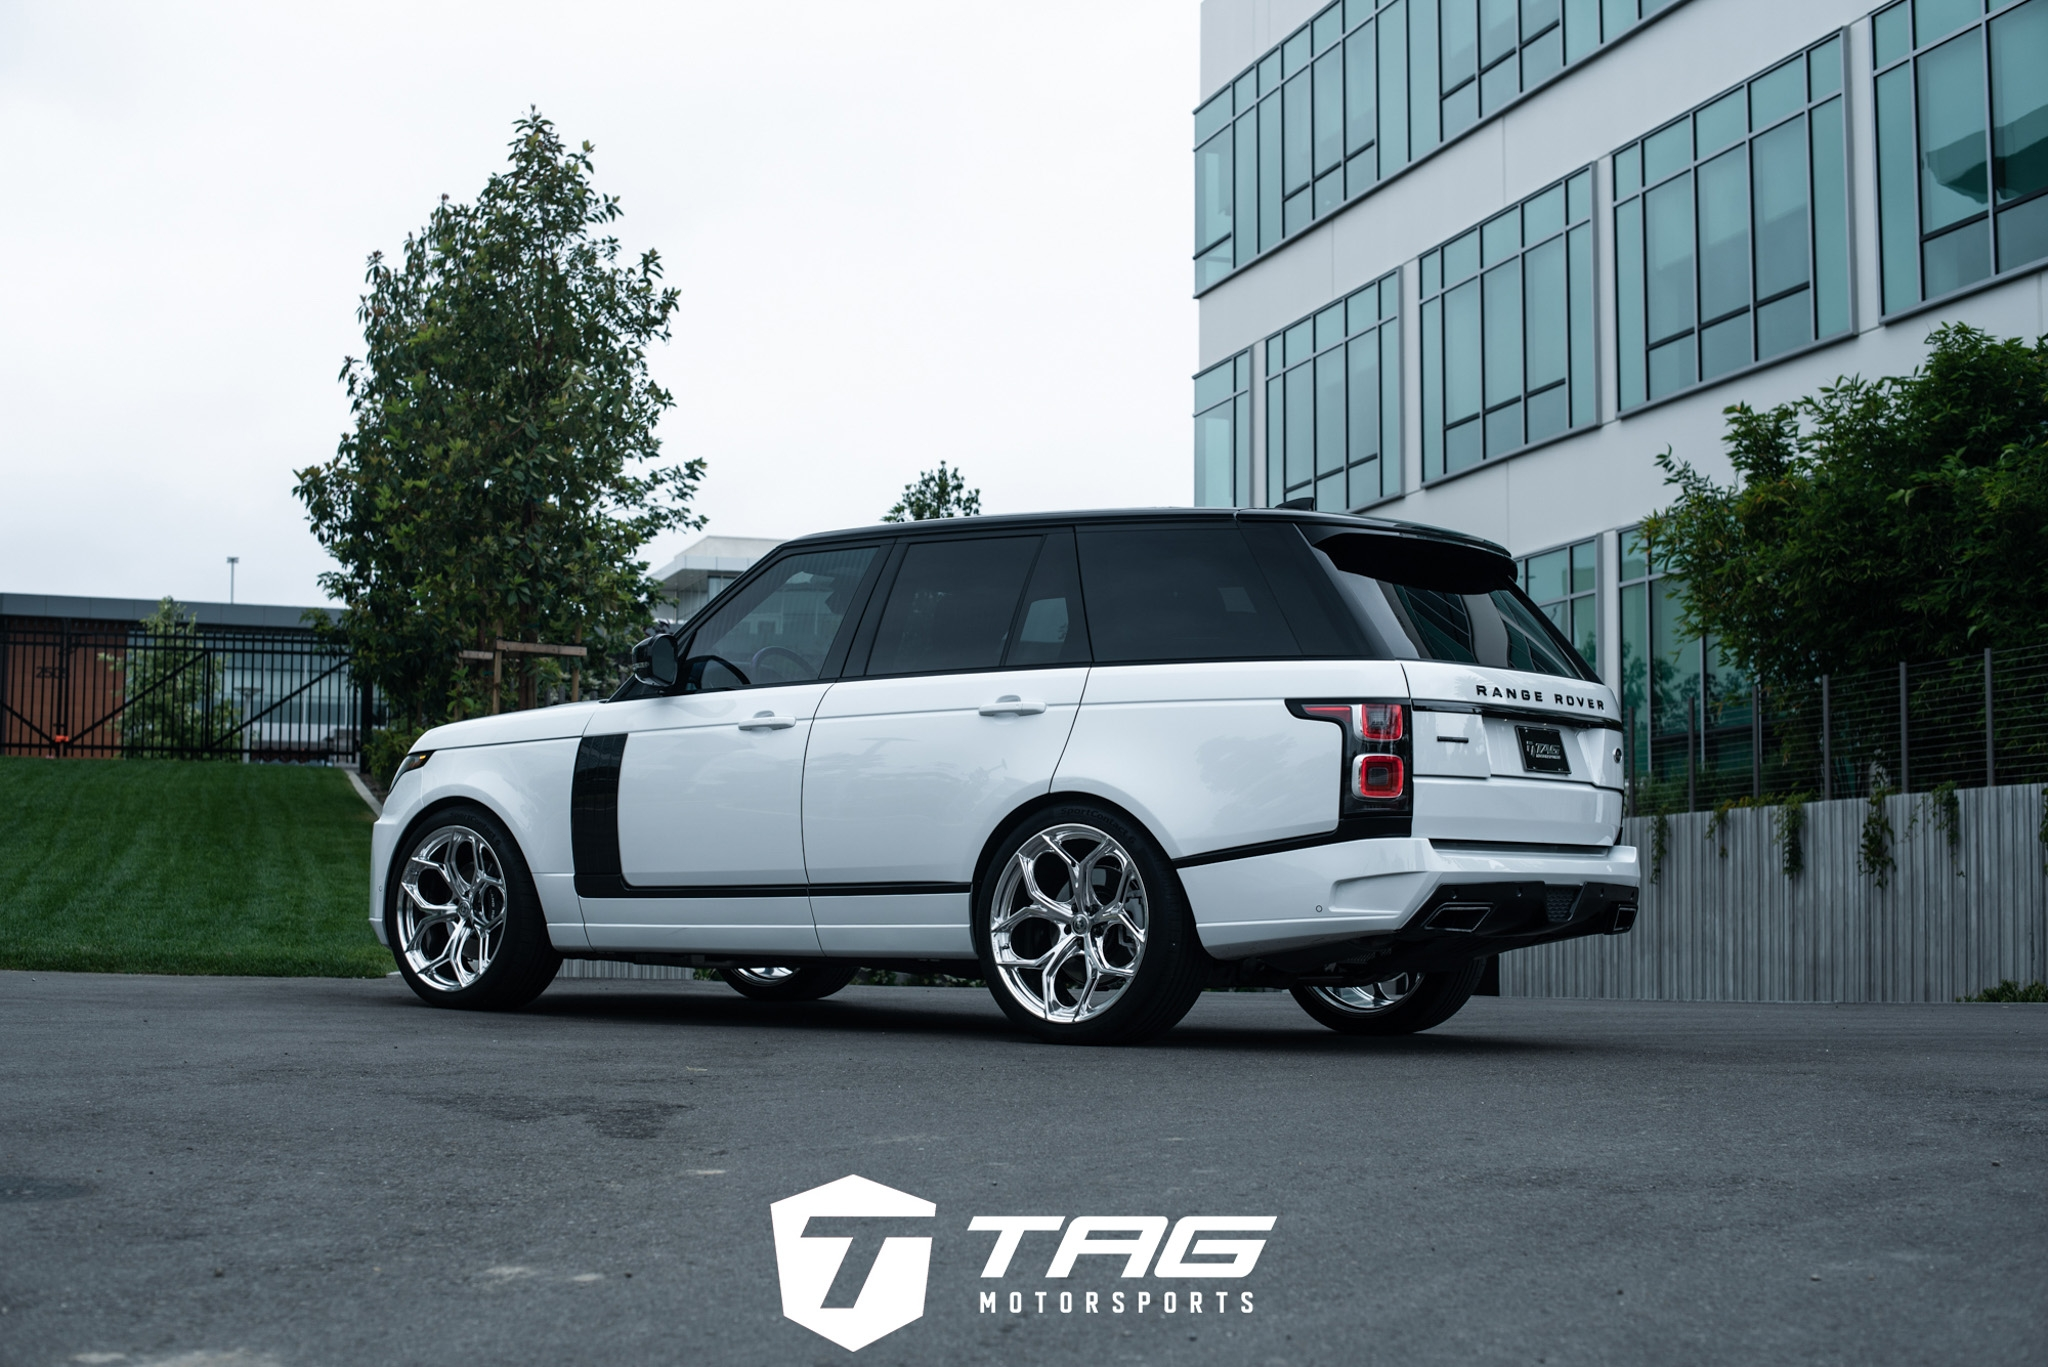 Startech Range Rover Sport with HRE P111SC in Polished Clear